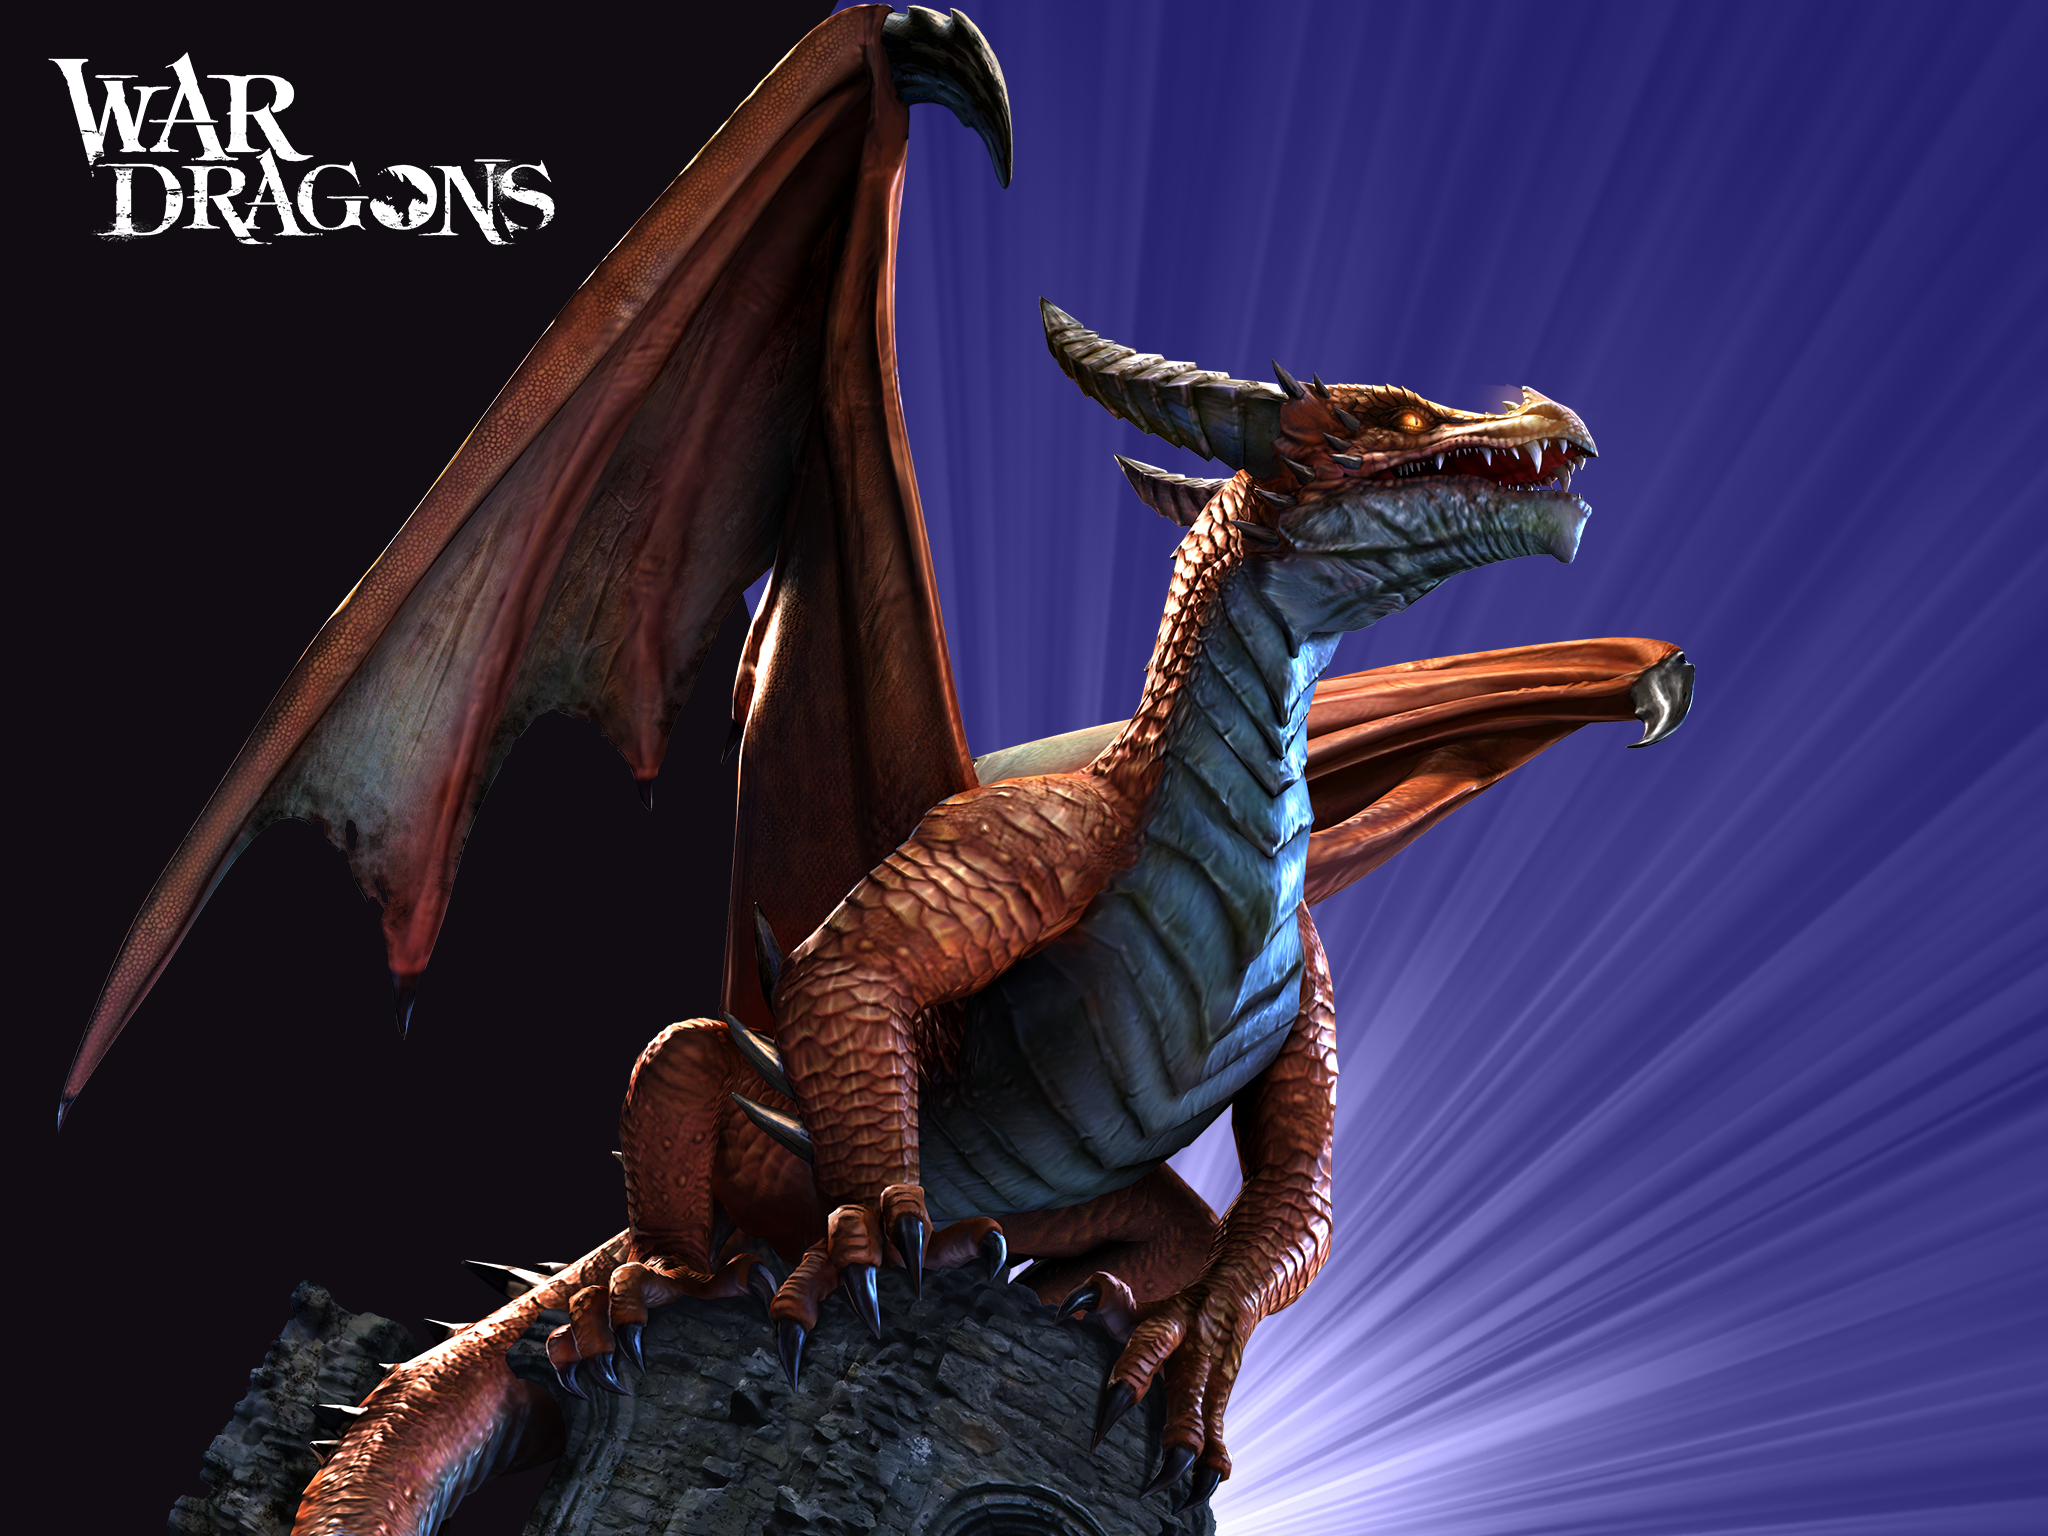 war dragons for ios & android - videos, images, news, and fan kit